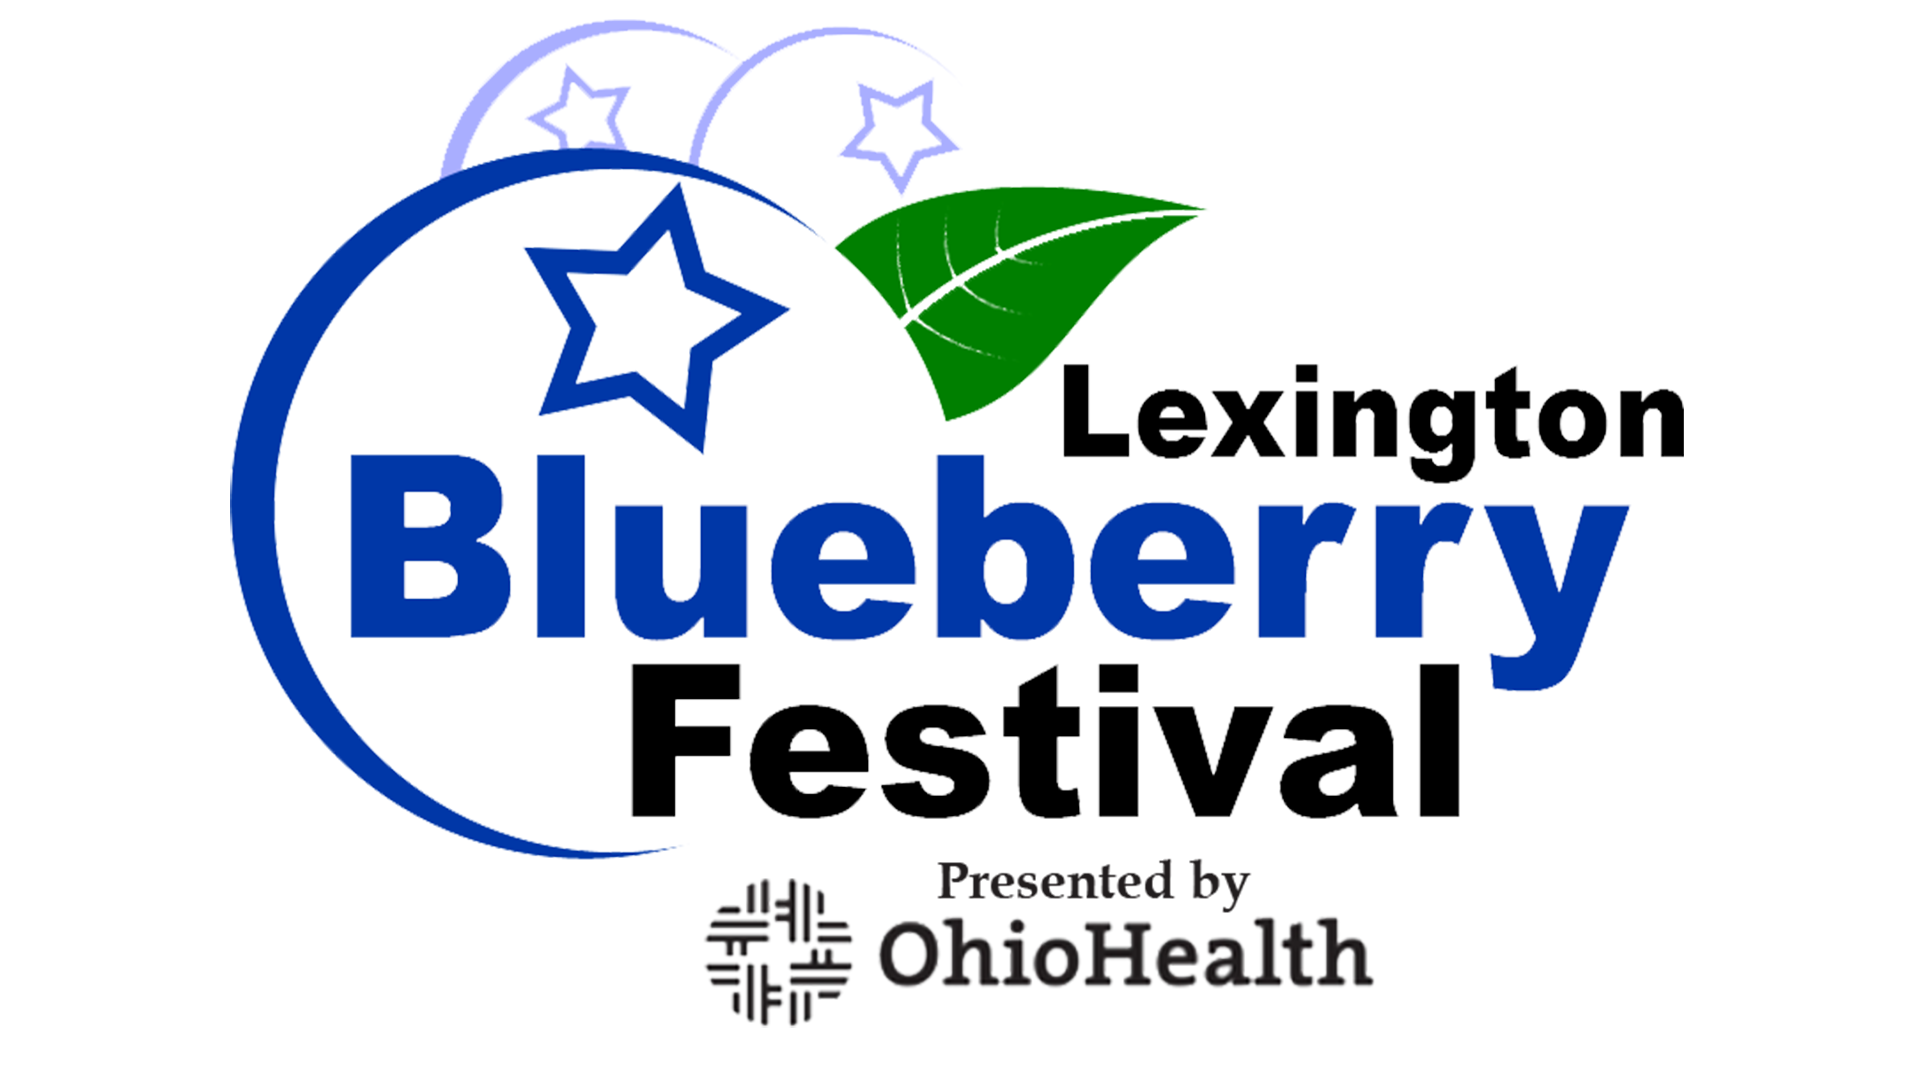 Blueberry Fest Graphic.png